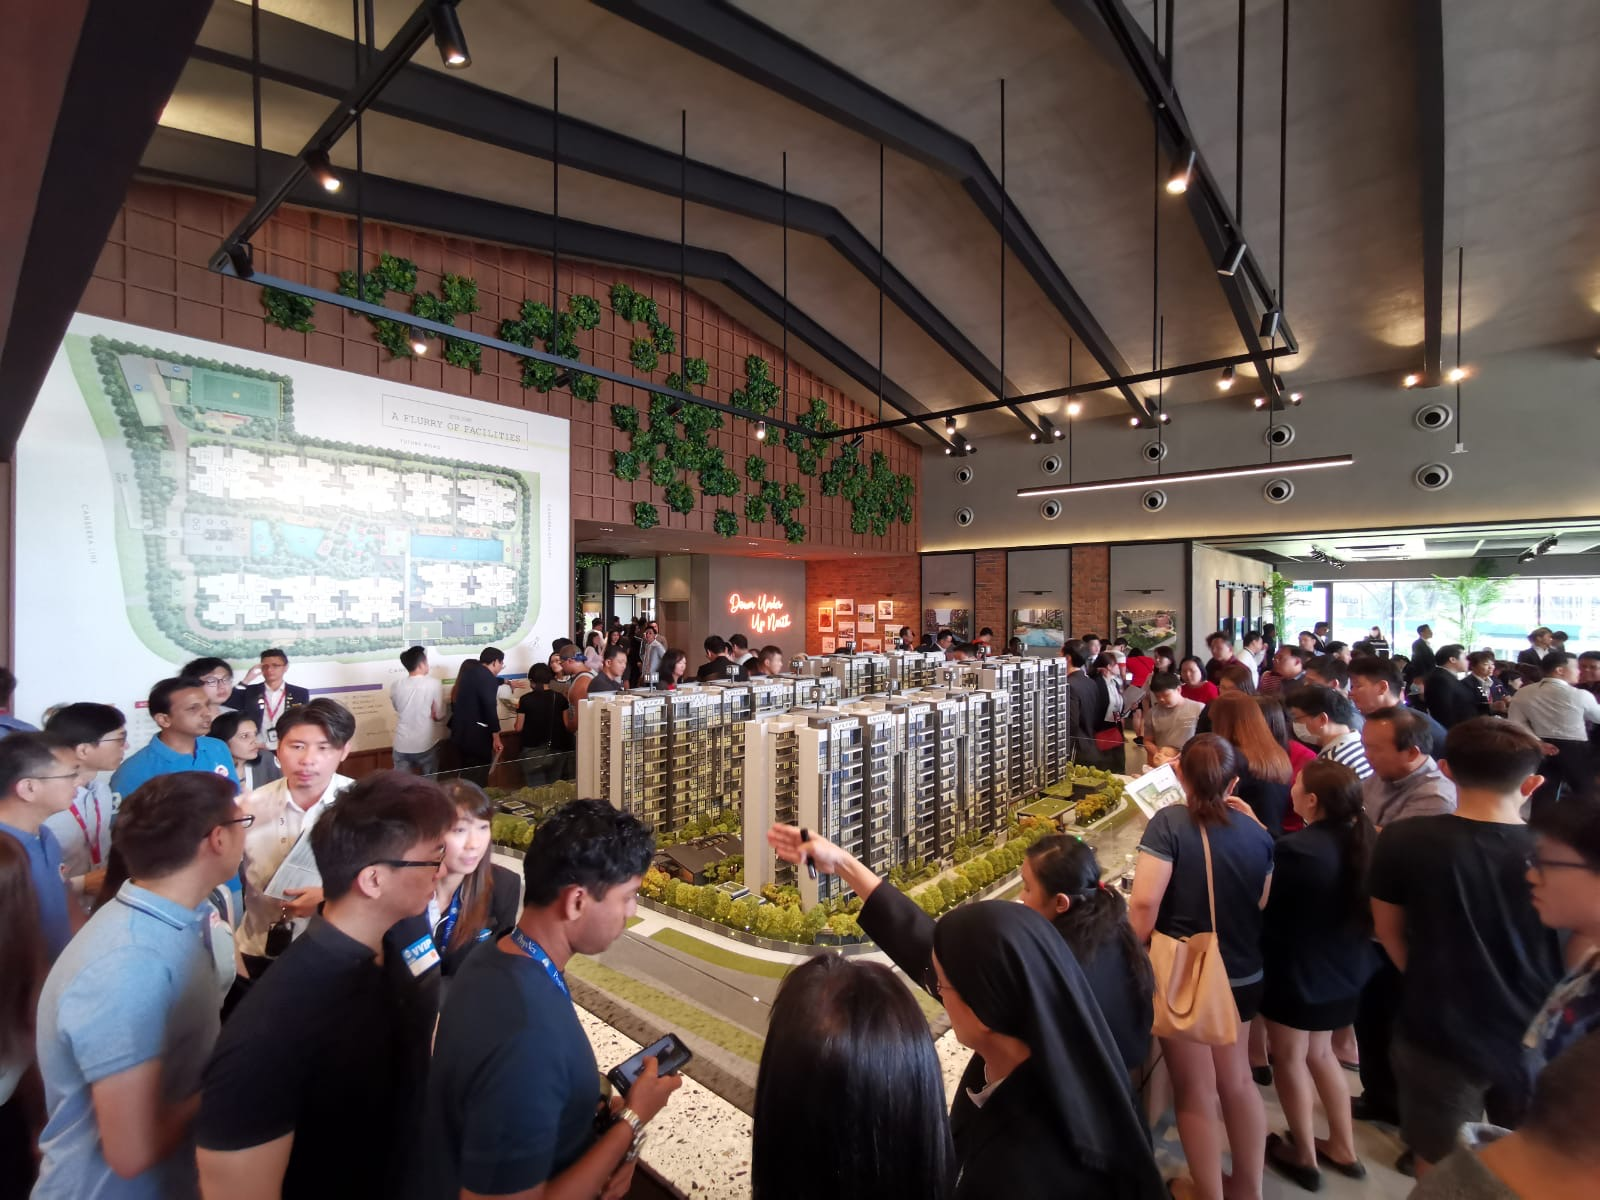 Crowd at preview of Parc Canberra executive condo where 316 units of a total of 496 units were sold last weekend (EdgeProp Singapore)